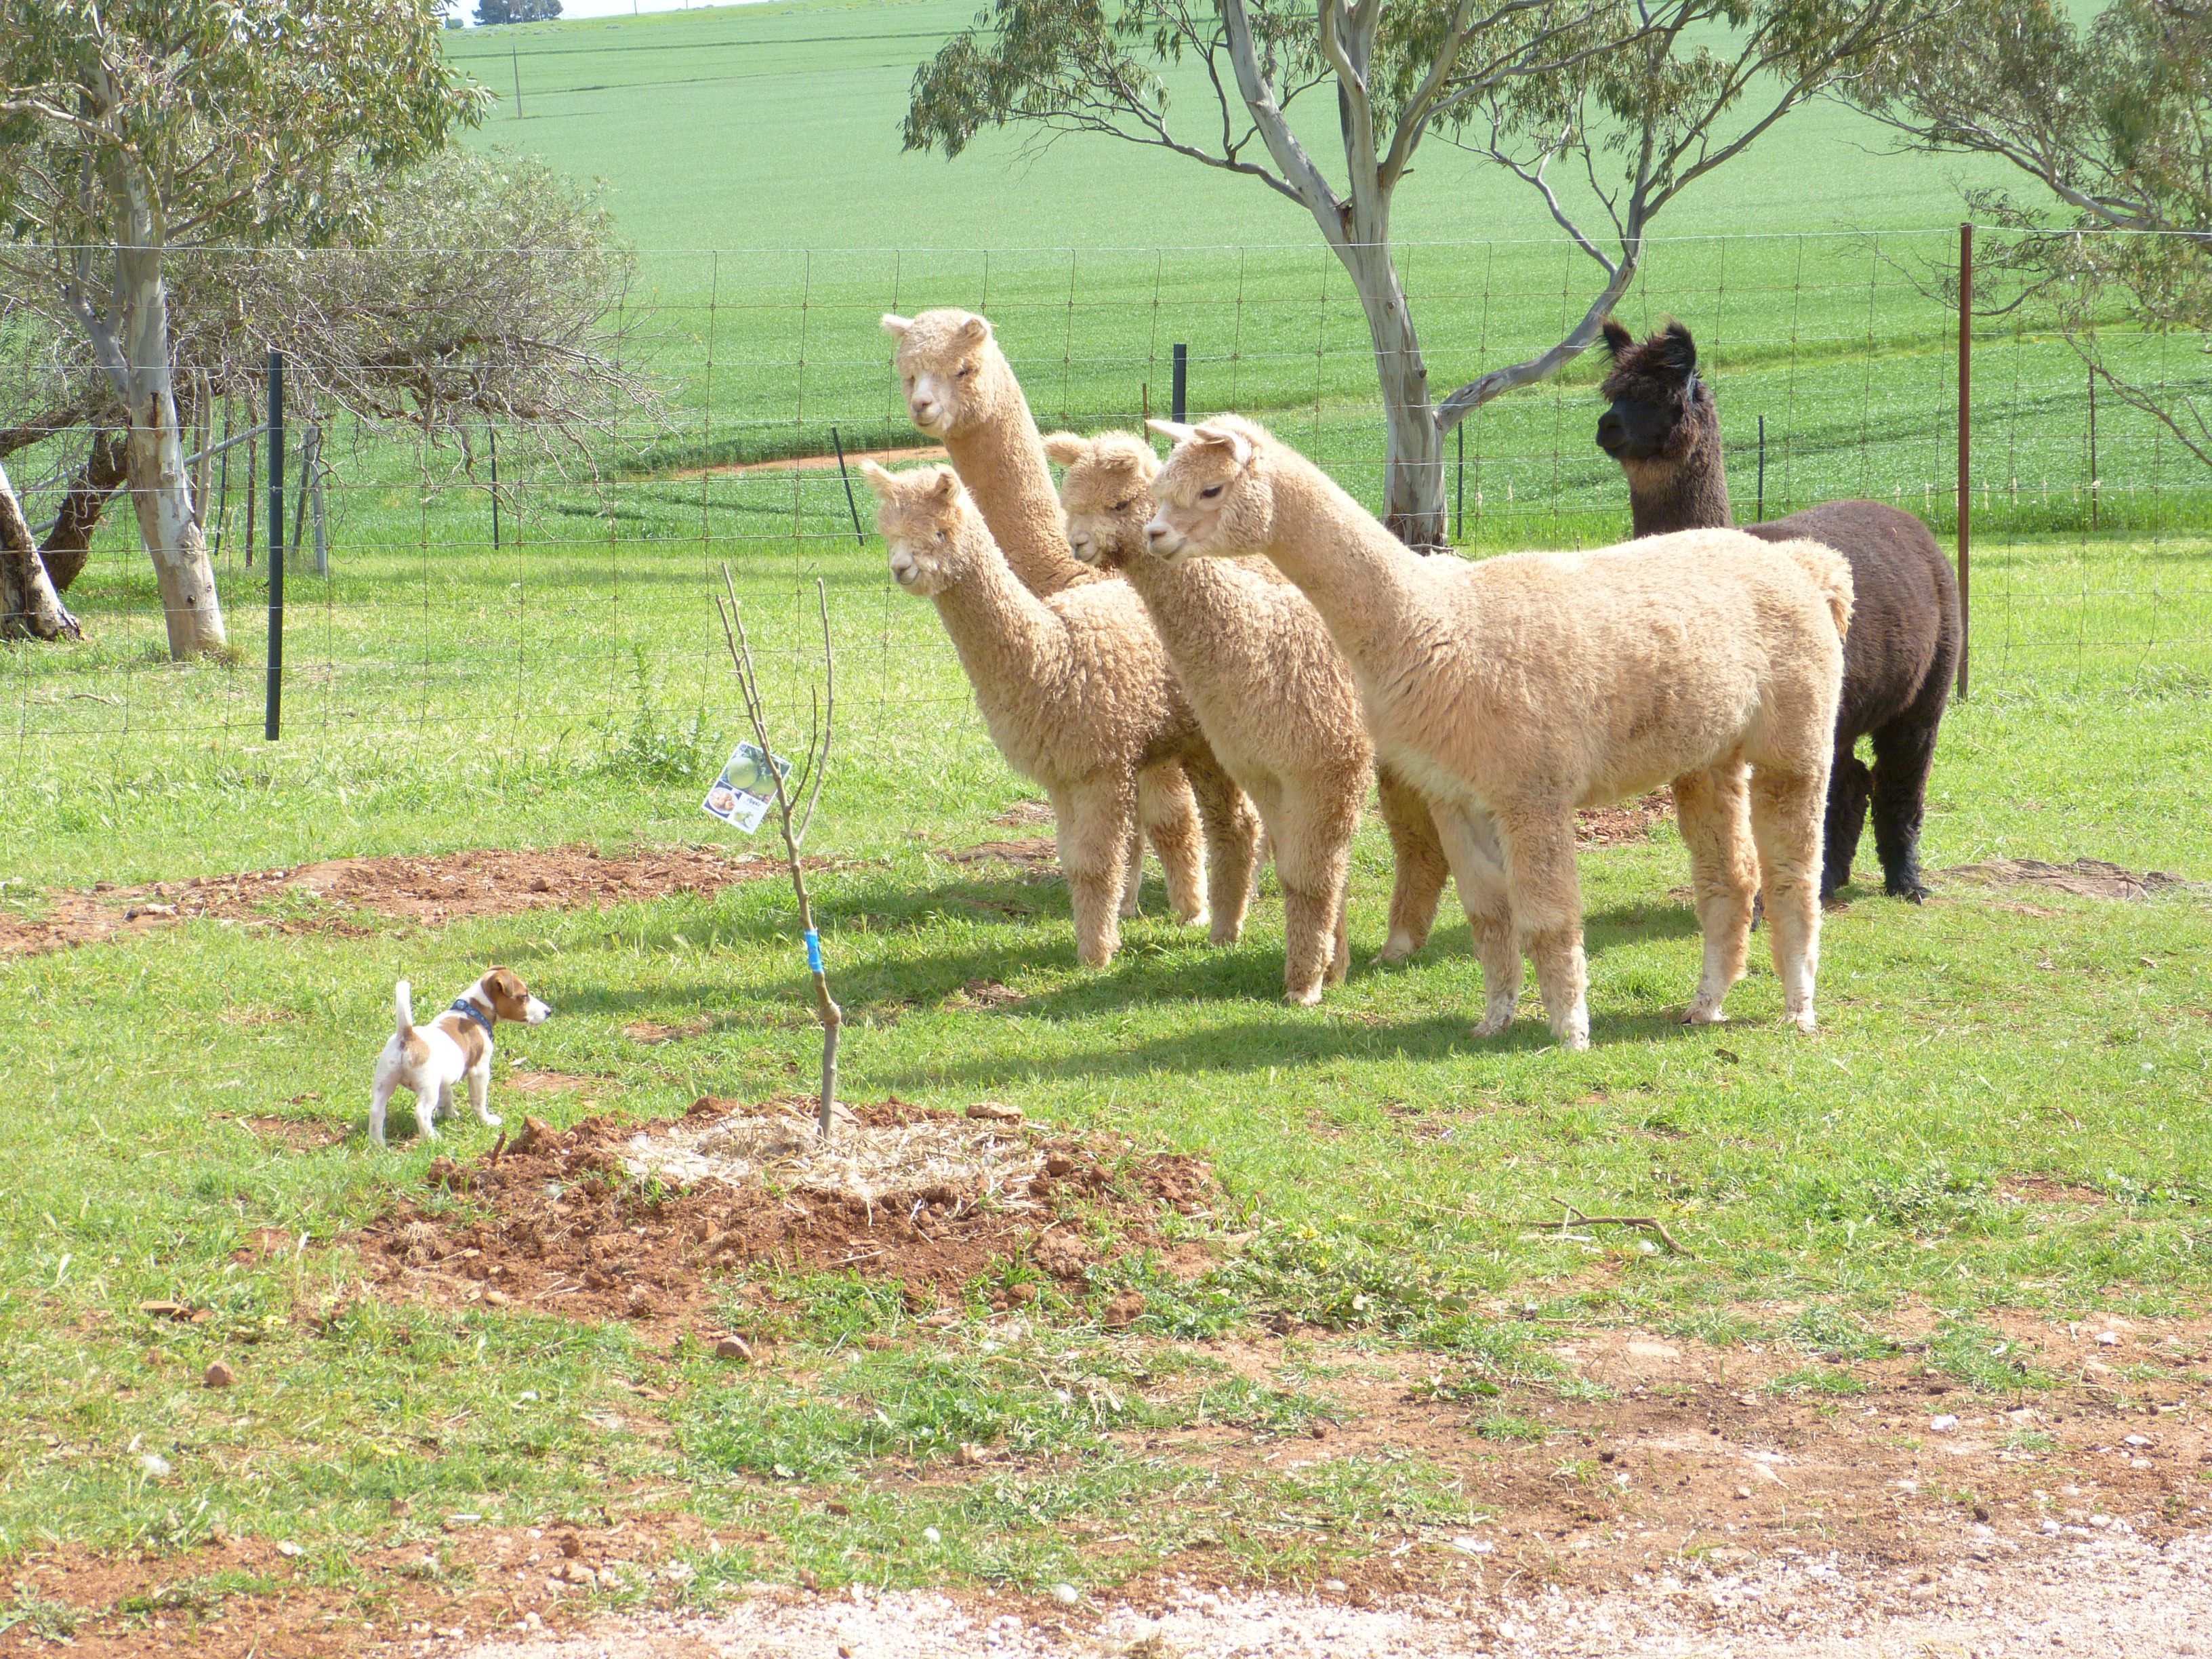 Dog and Alpaccas